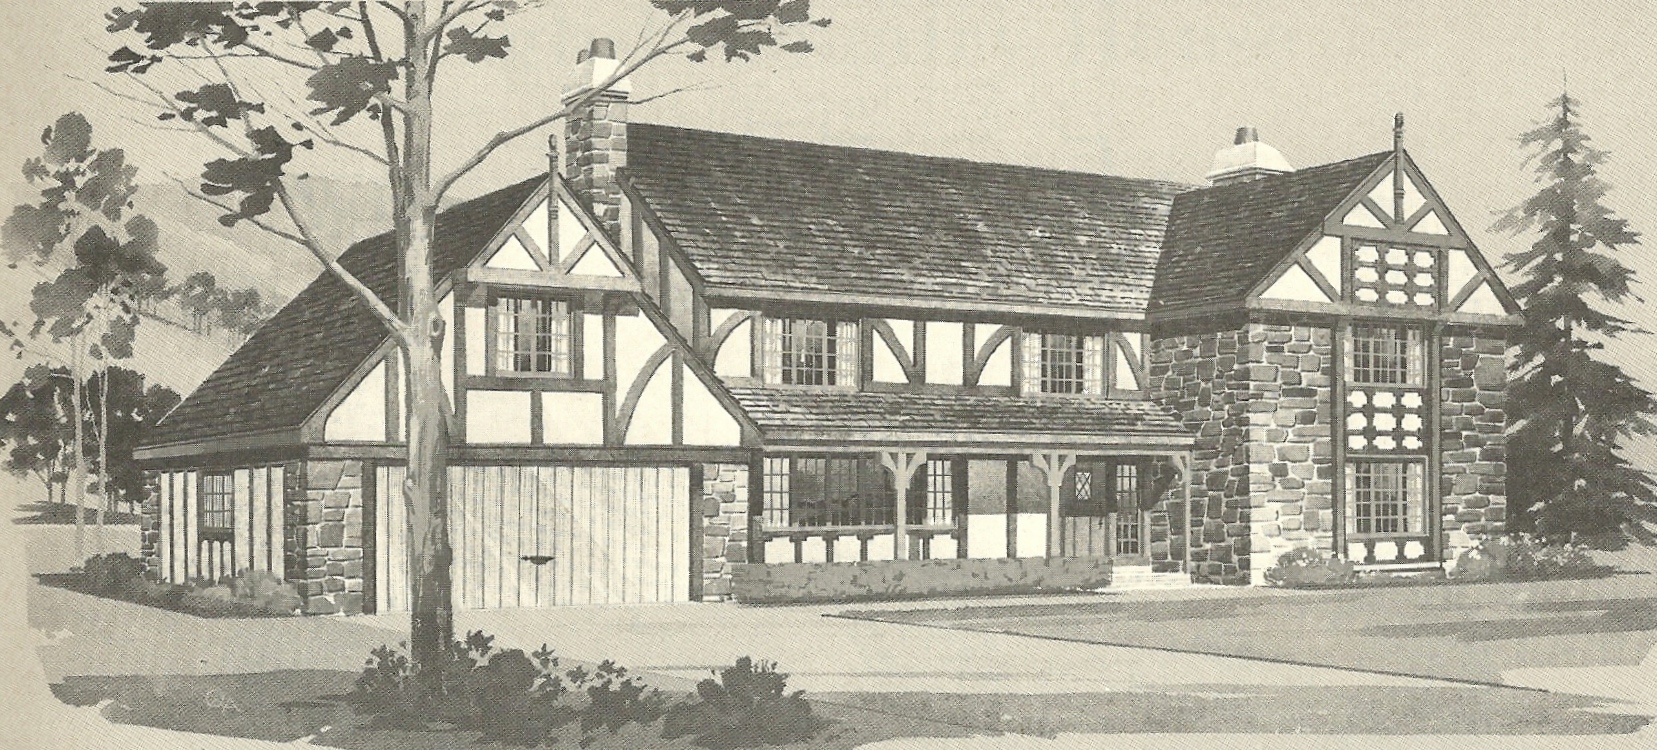 Vintage house plans 1970s english style tudor homes for Interior design ideas for 1970s house